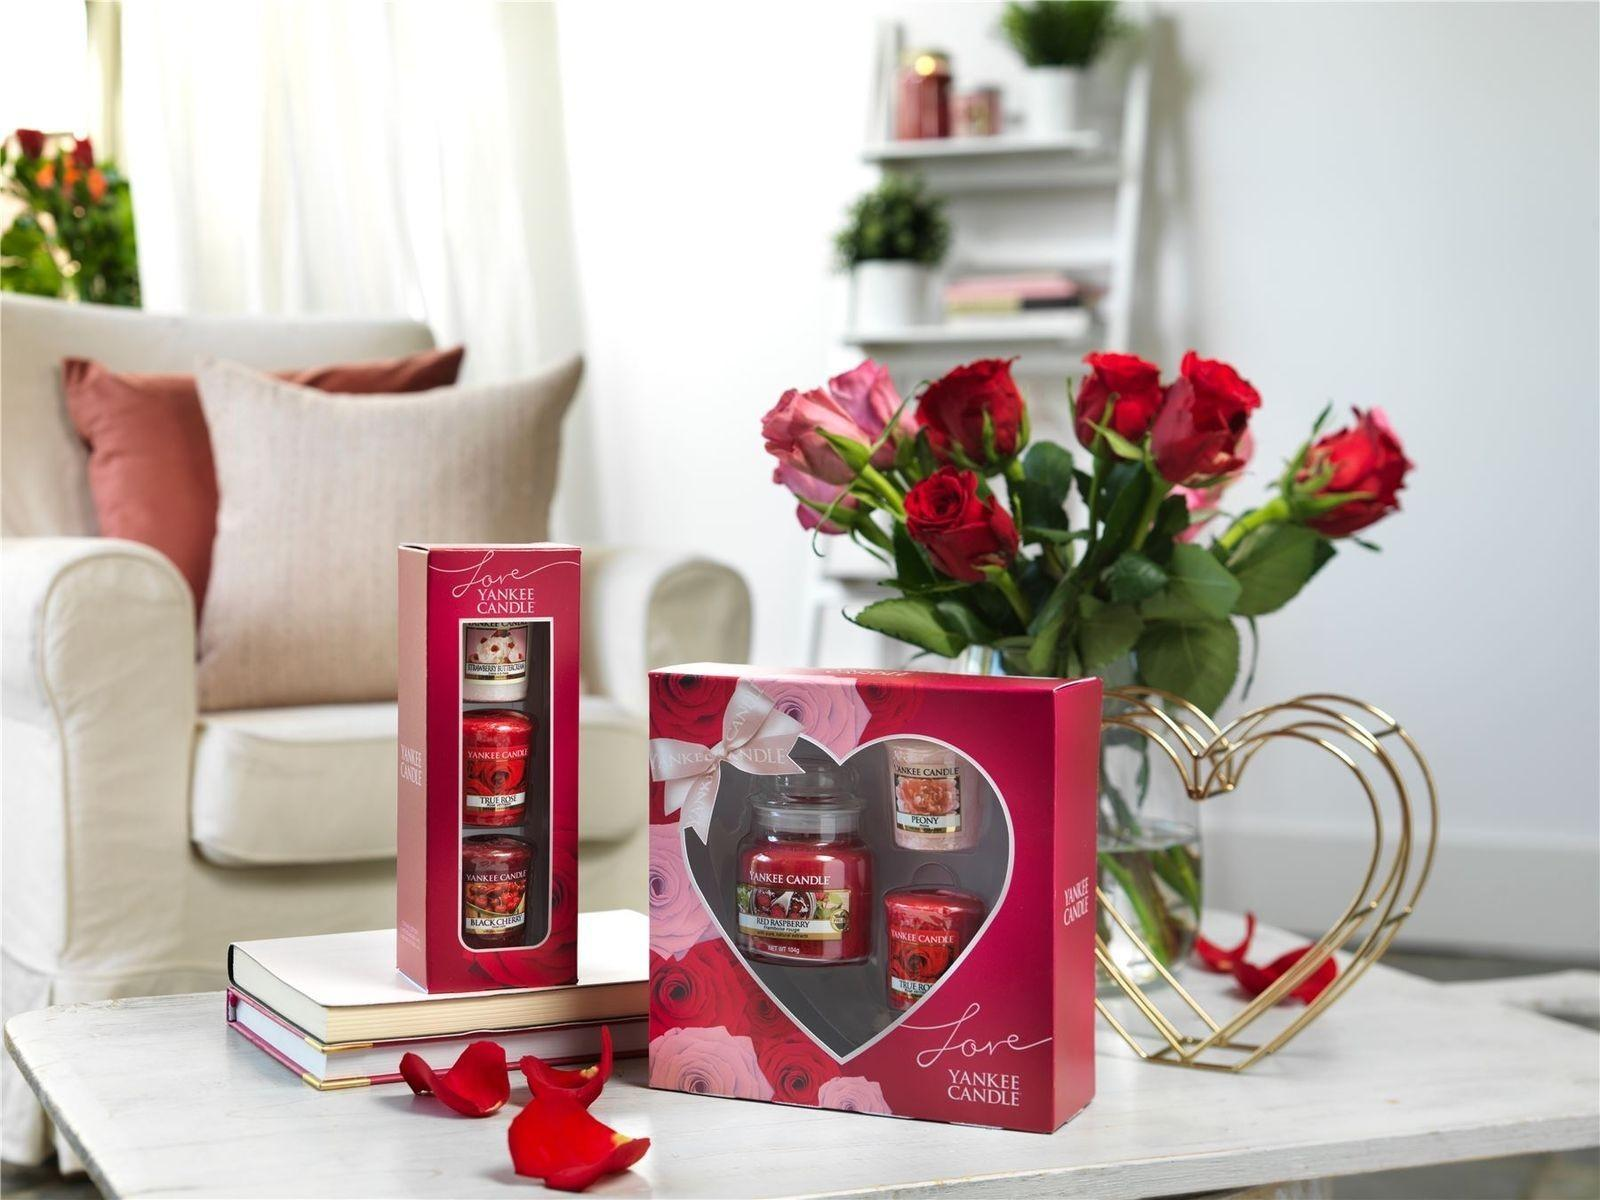 Yankee Candle Valentines Day Love Fragrance Votive